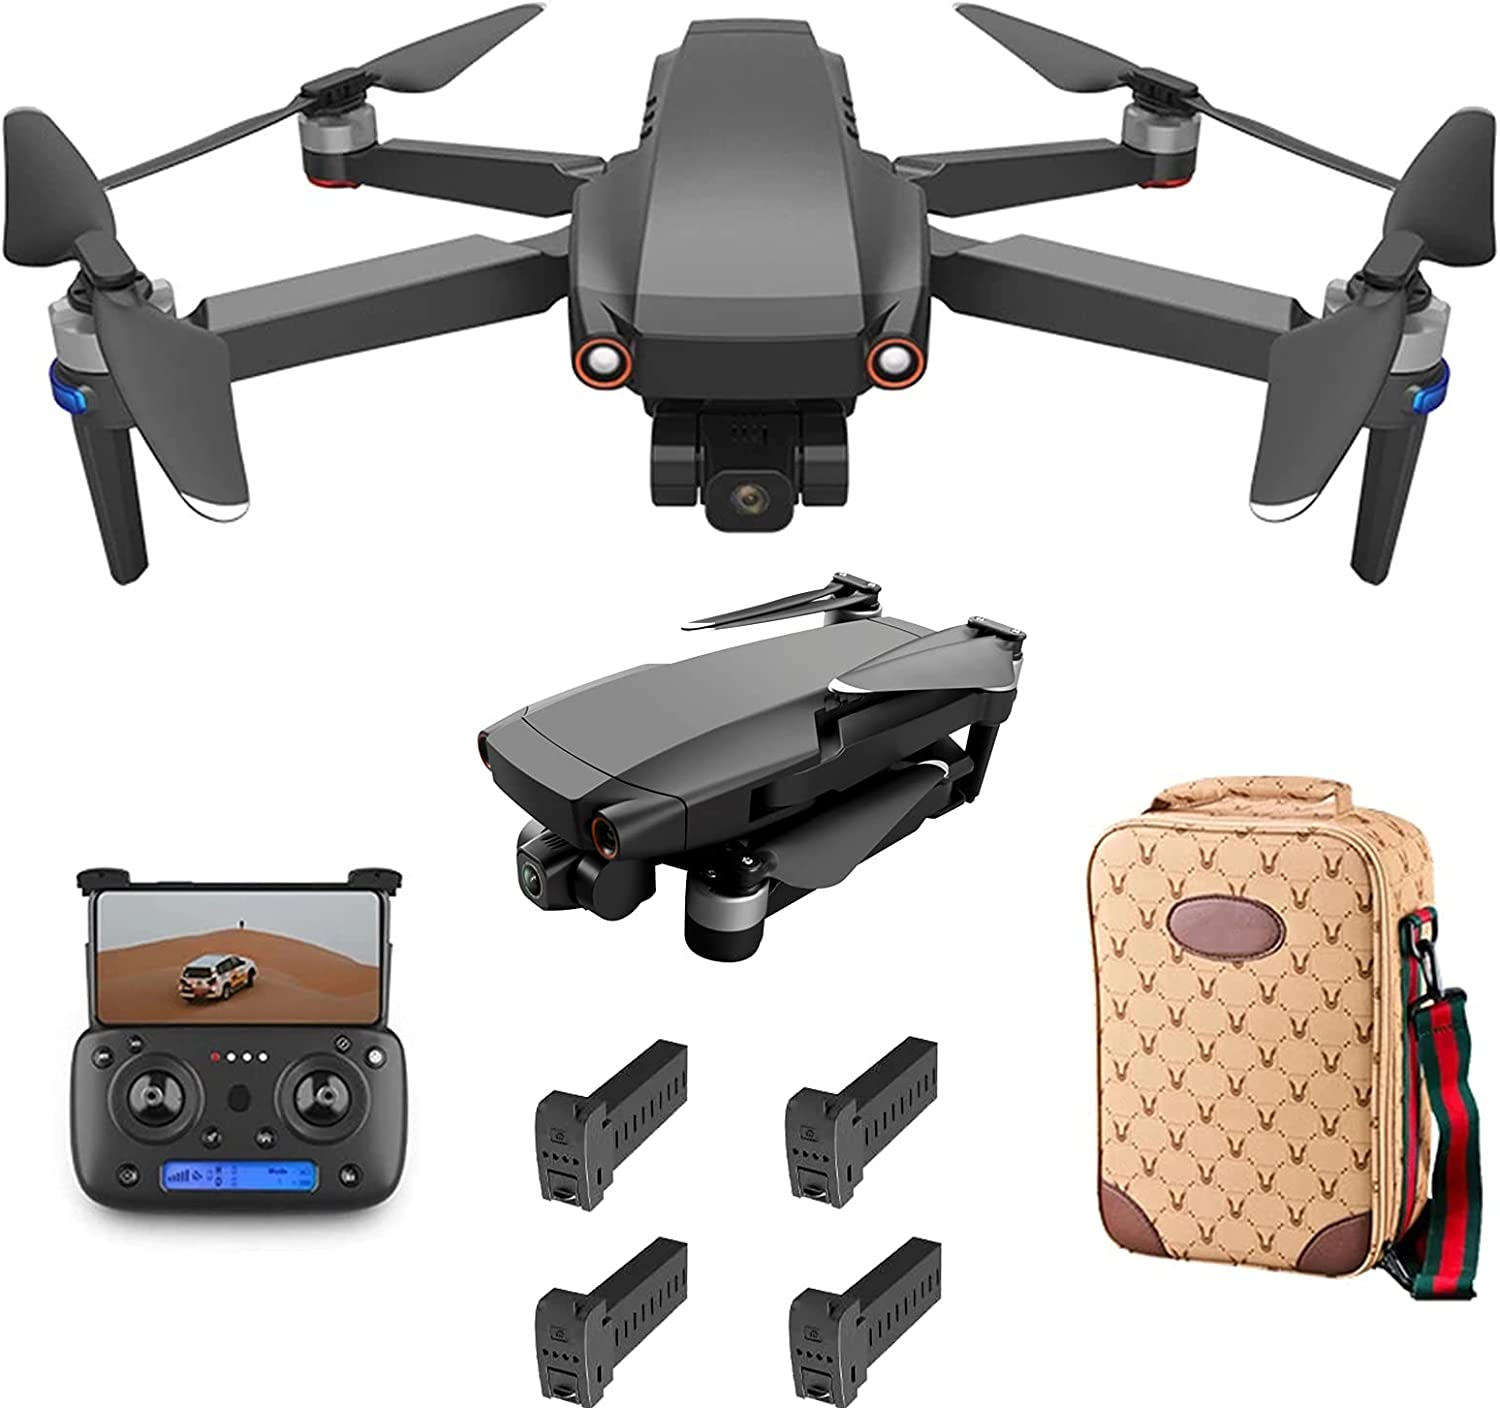 Lailuaxoa Foldable GPS Drone with Camera 8K for Beginners, Mini Drone with Smart Selfie/Brushless Motor/Smart Return to Home/Follow Me/5G WiFi Transmission